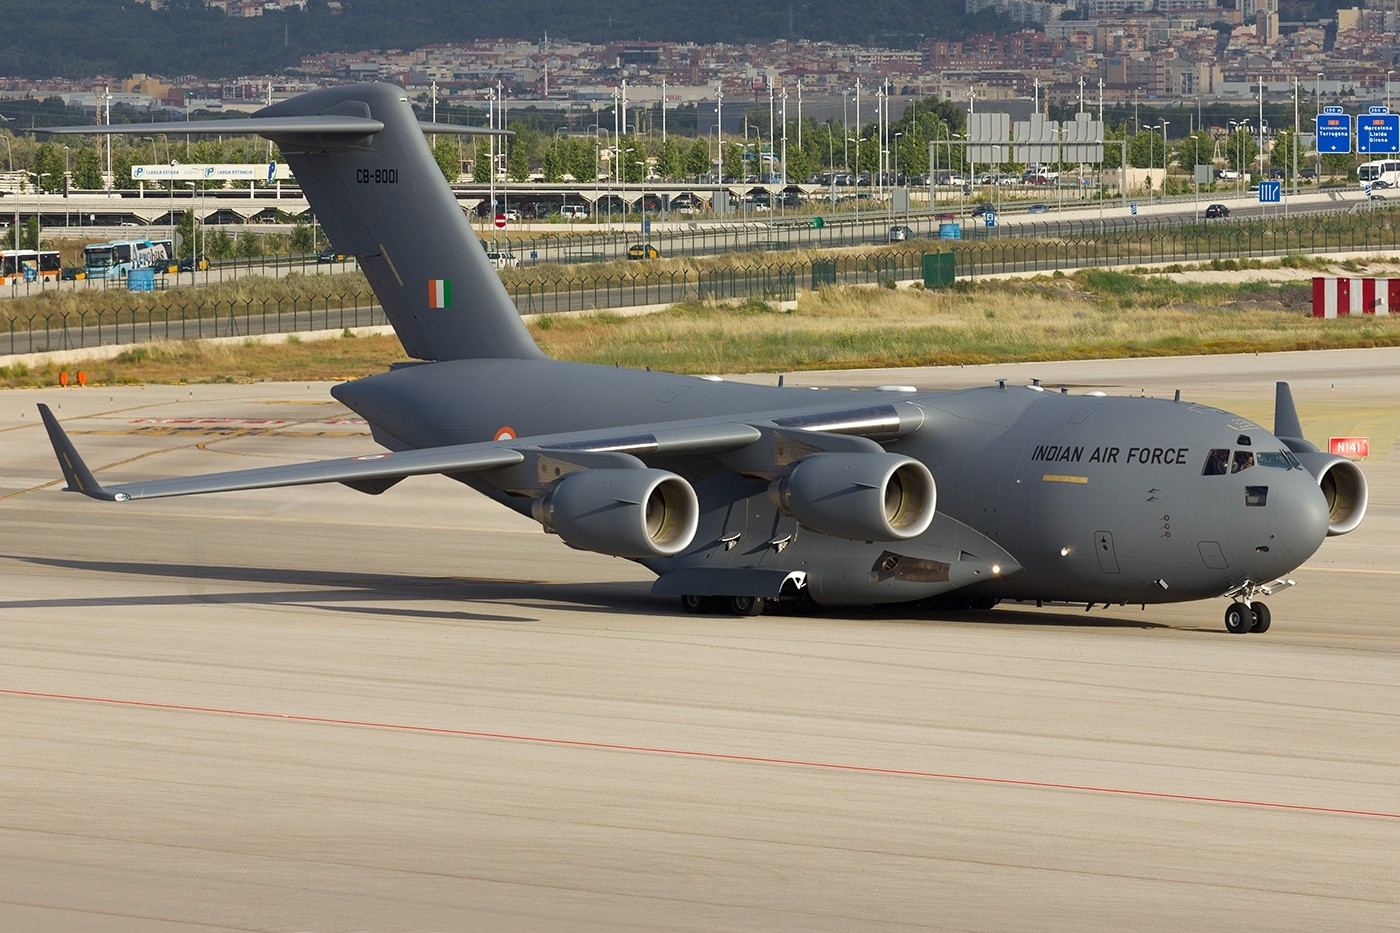 General 1400x933 Indian Air Force Boeing C-17 Globemaster III military aircraft military aircraft vehicle